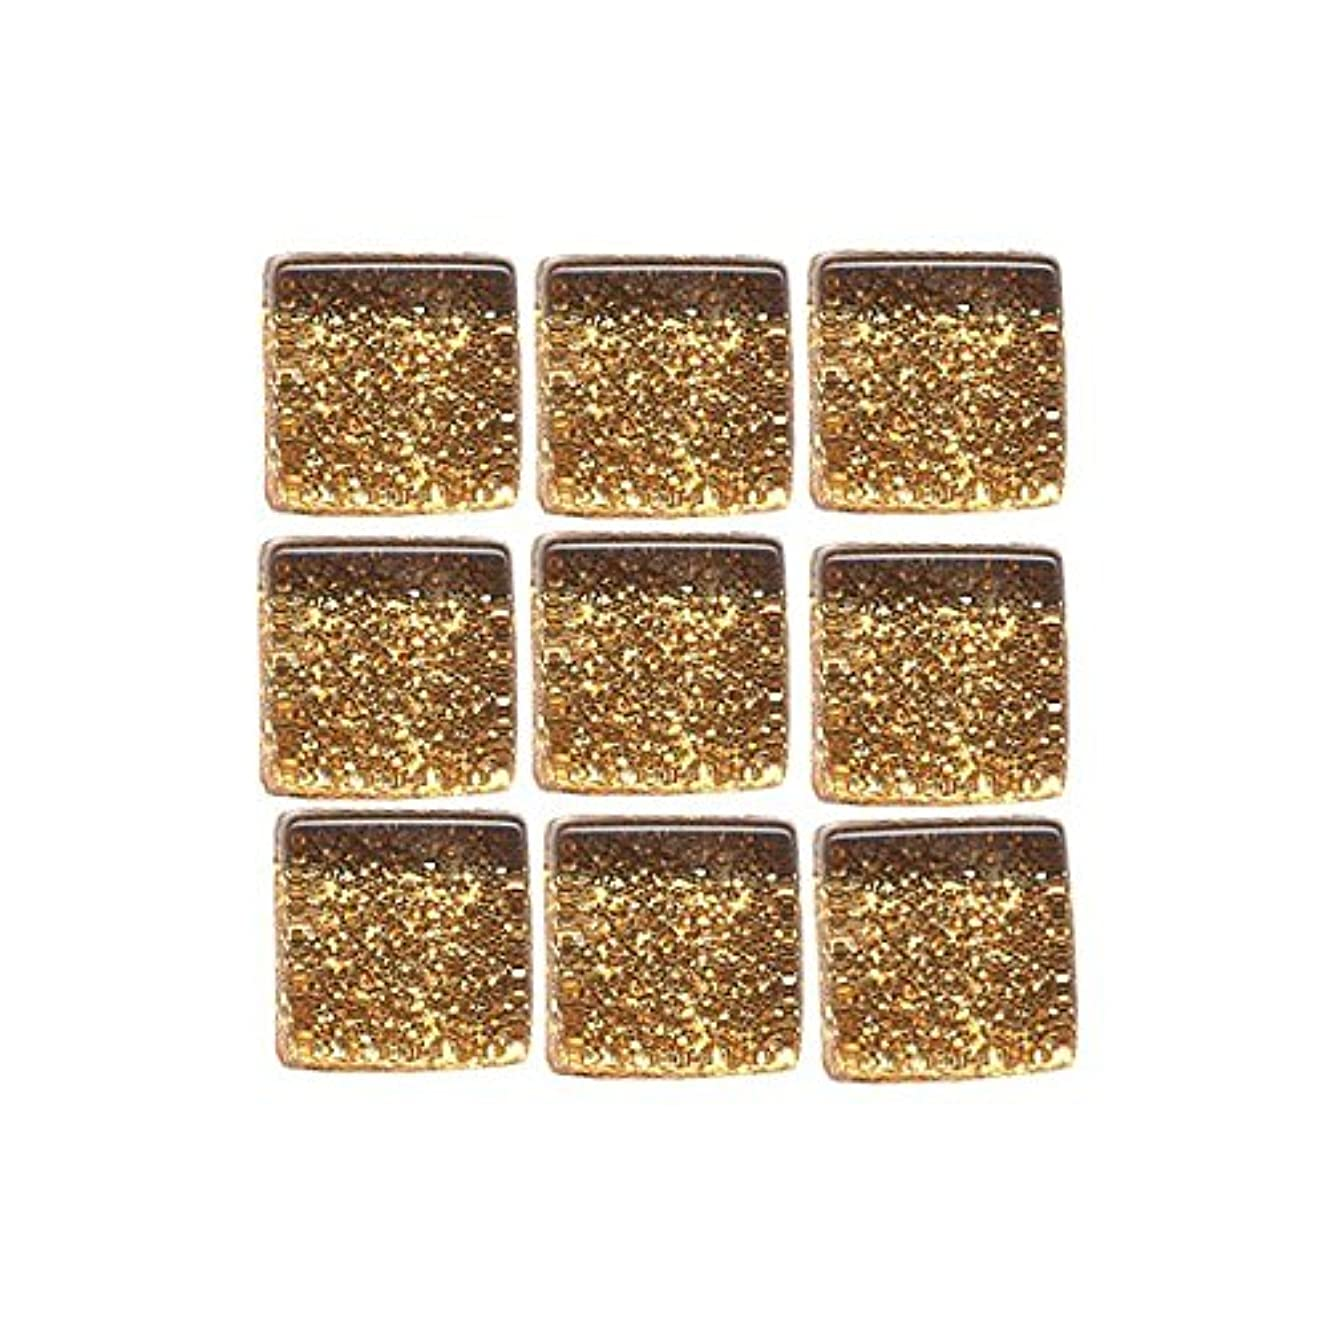 MosaixPro 10 x 10 x 4 mm 200 g 215-Piece Glass Glitter Tiles, Copper